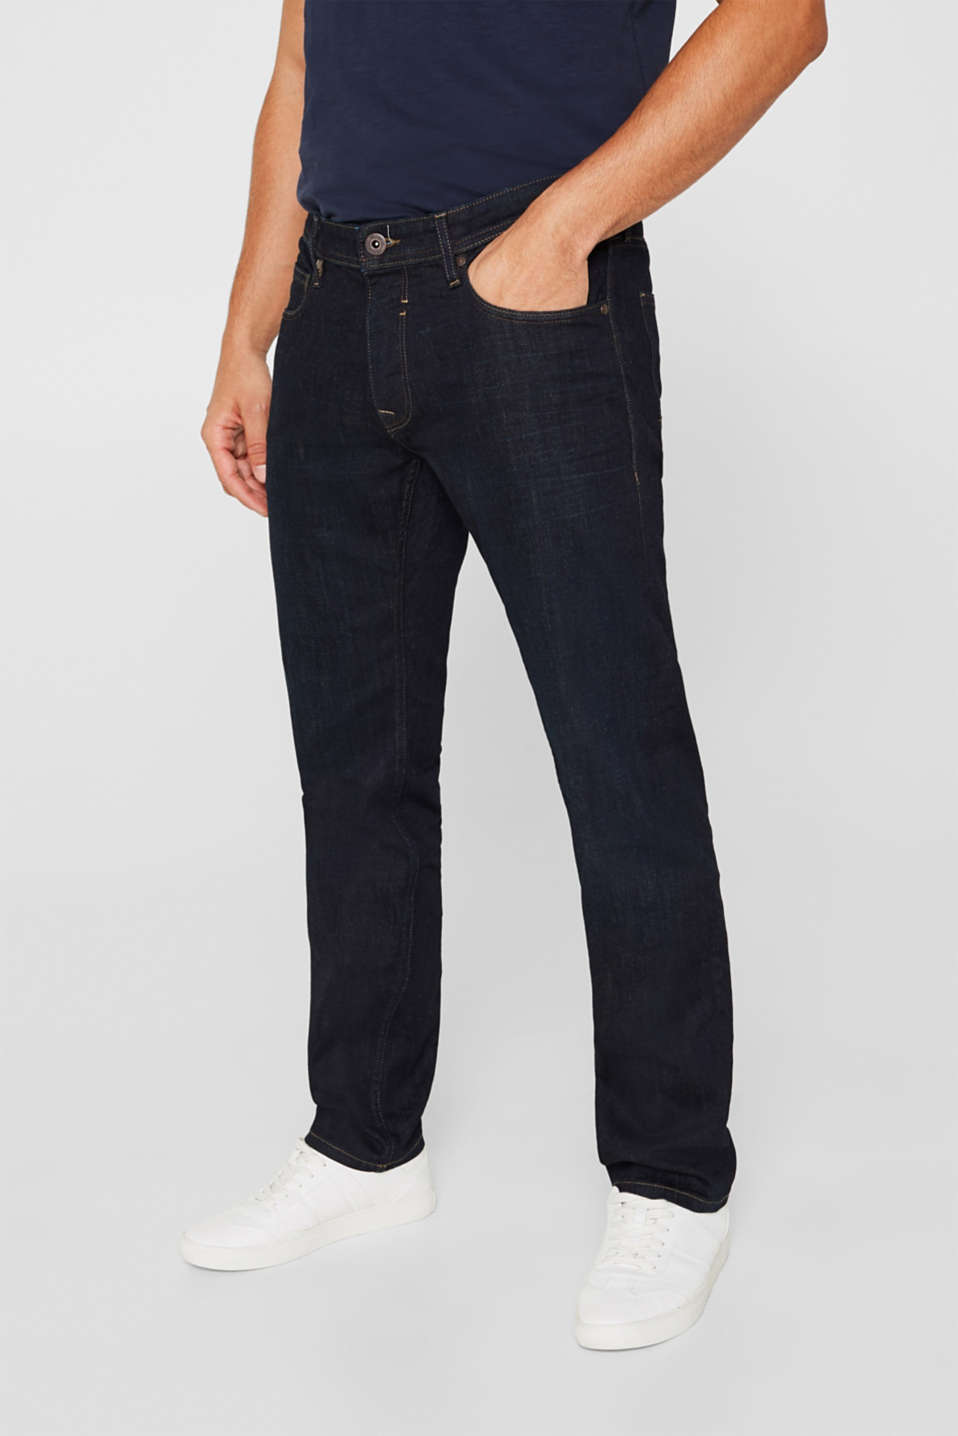 Esprit - Rinse wash stretch jeans